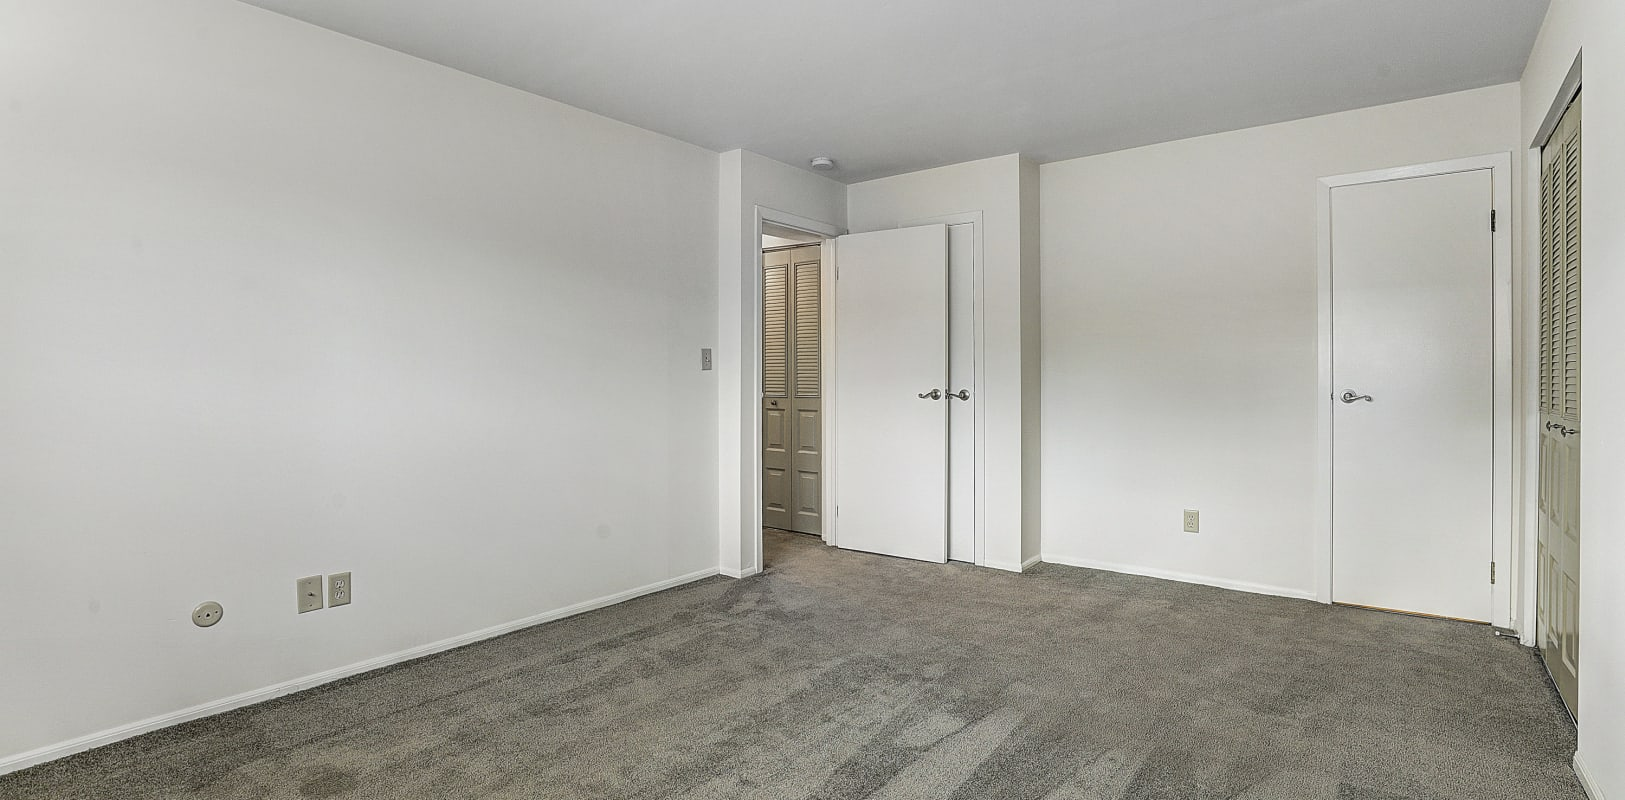 Large empty bedroom ready for move in at Penn Crest Apartments in Allentown, Pennsylvania